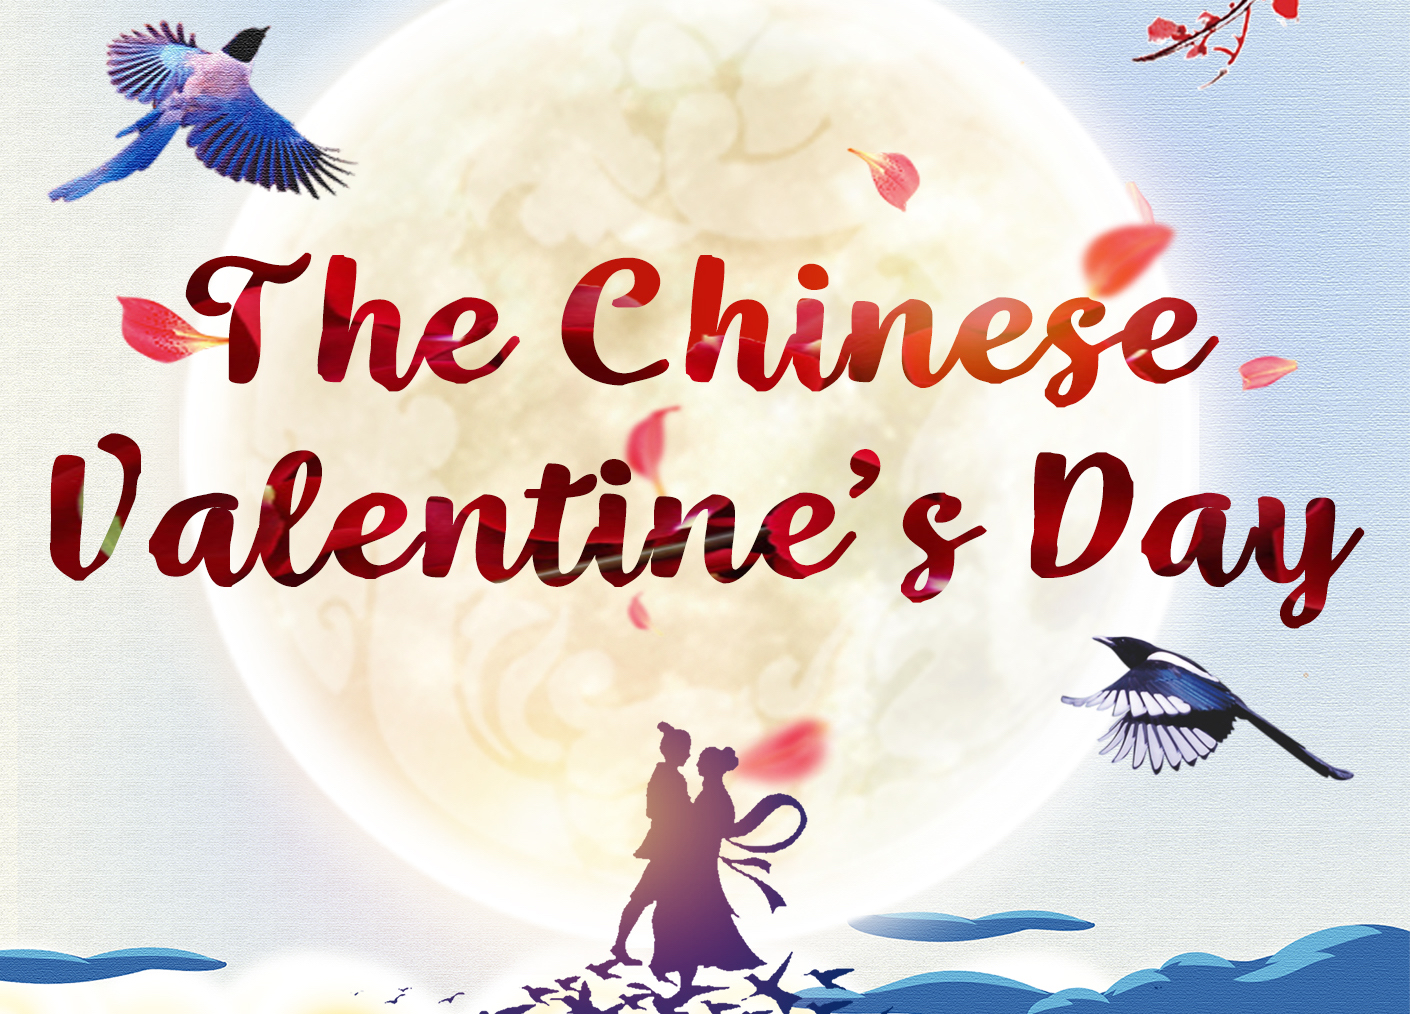 Magpie bridge crossed lovers: Celebrating the Chinese Valentine's Day